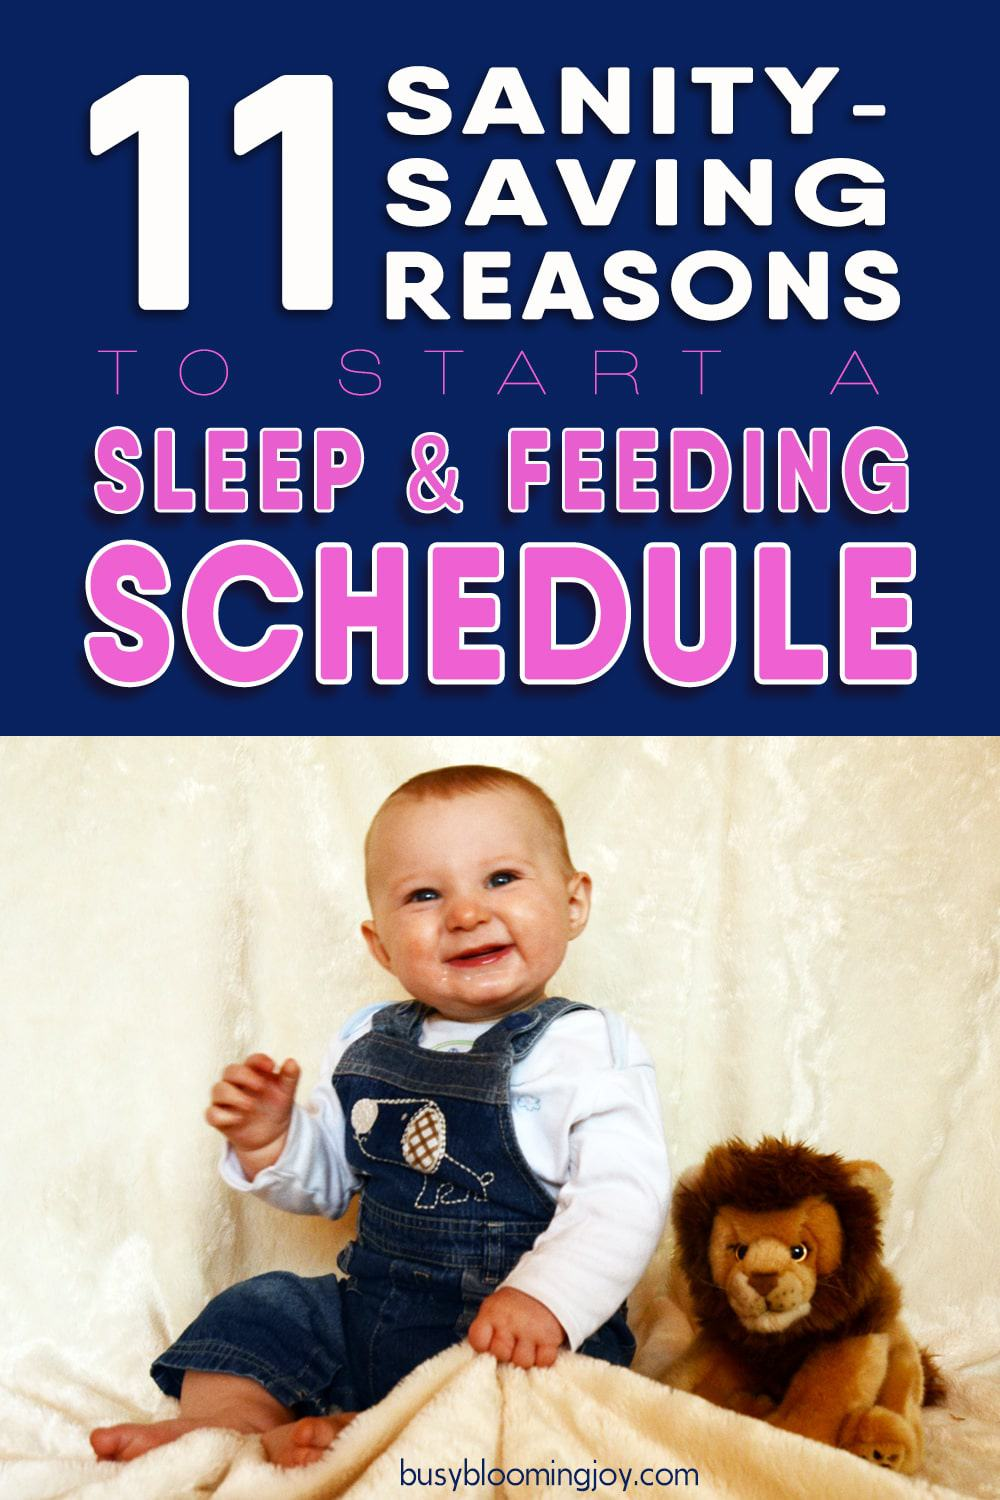 11 Sanity-Saving Reasons To Start A Newborn Sleep & Feeding Schedule